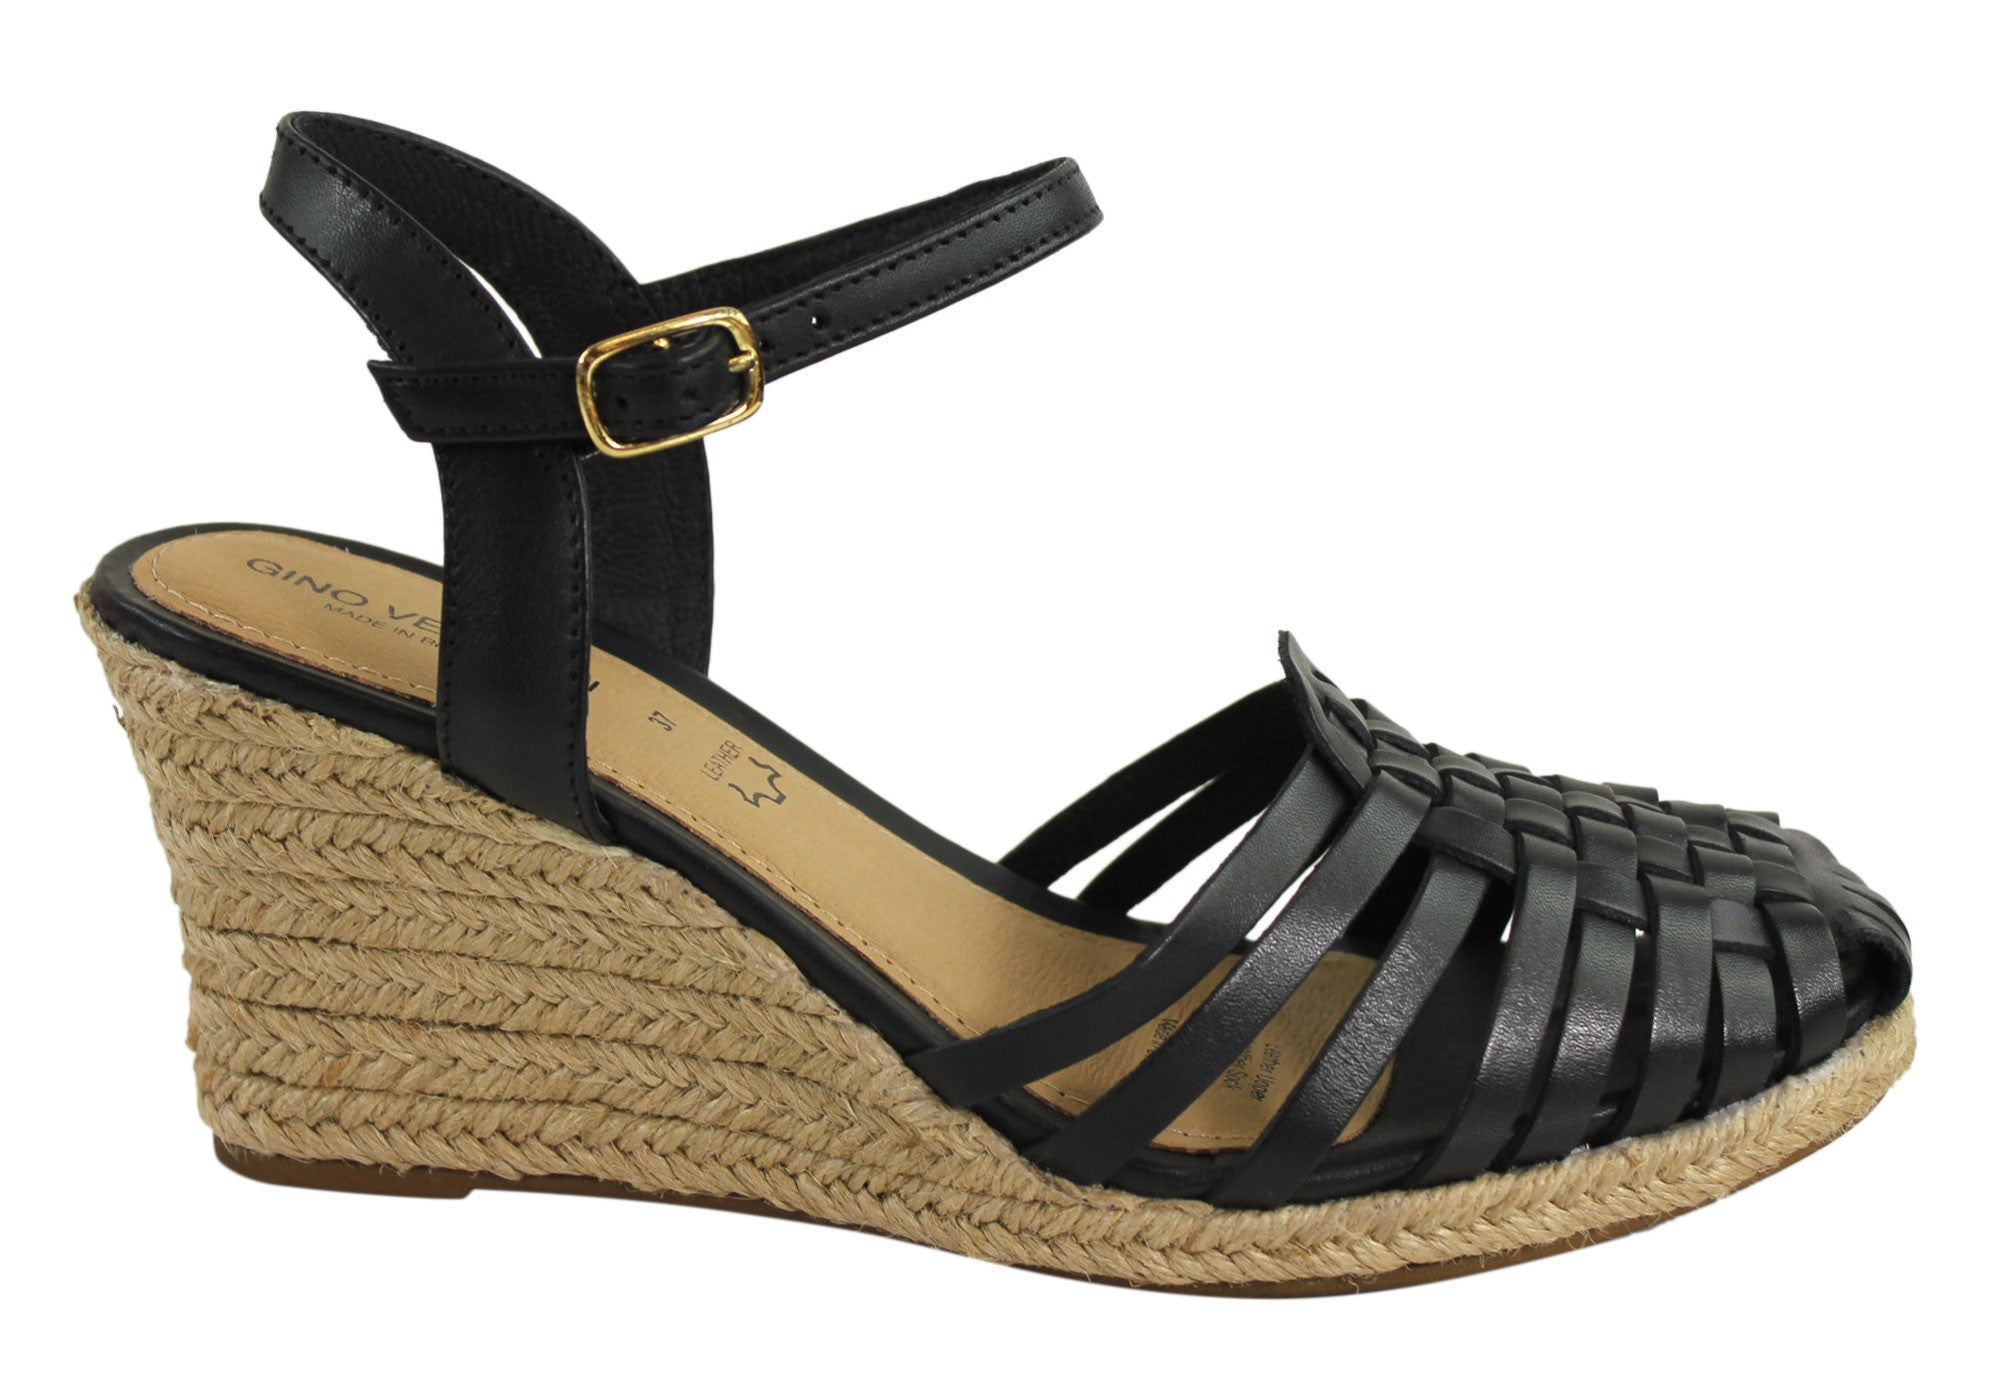 Gino Ventori Fabulous Womens Wedge Espadrille Shoes